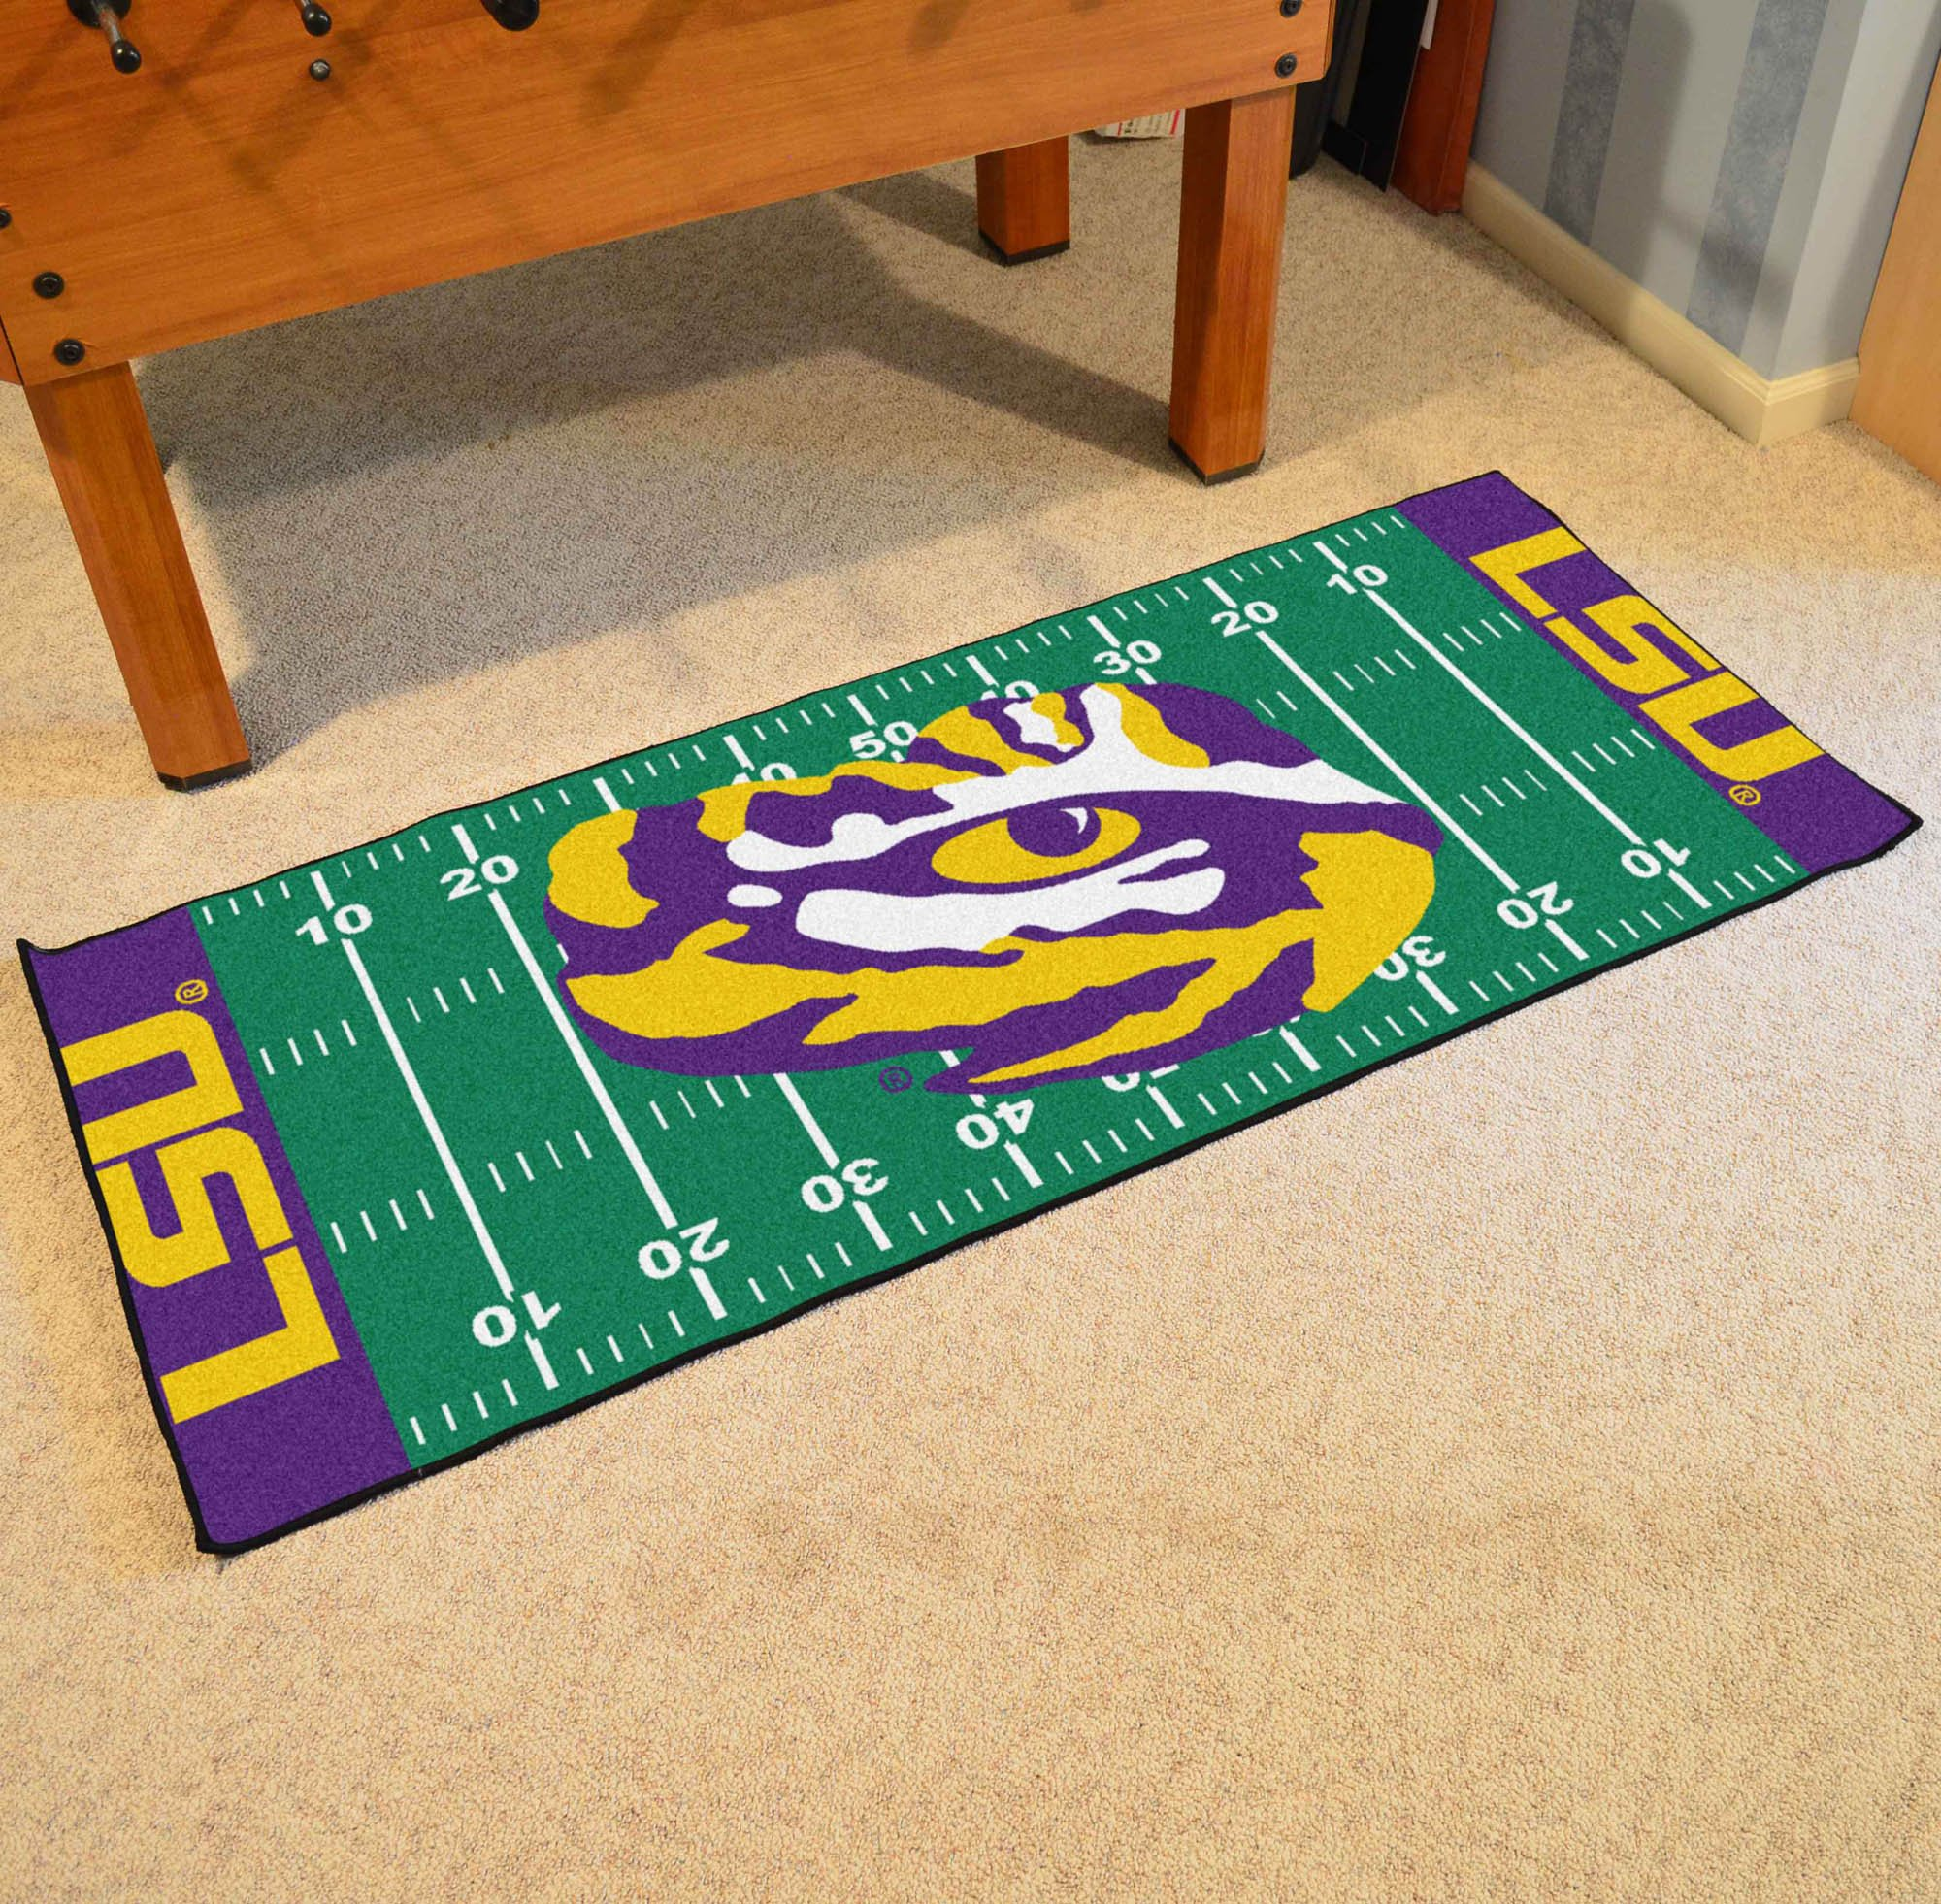 NCAA Louisiana State University Tigers Football Field Runner Mat Area Rug by Unknown (Image #2)